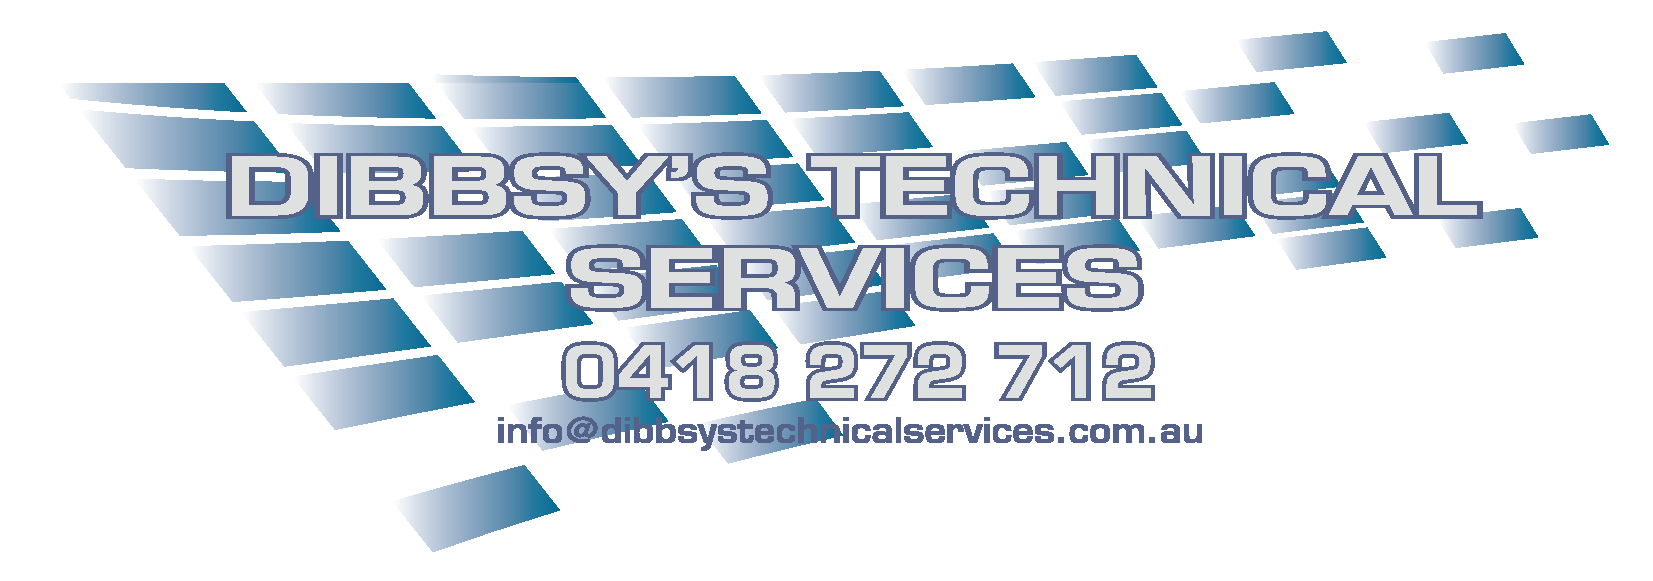 Dibbsys Technical Services